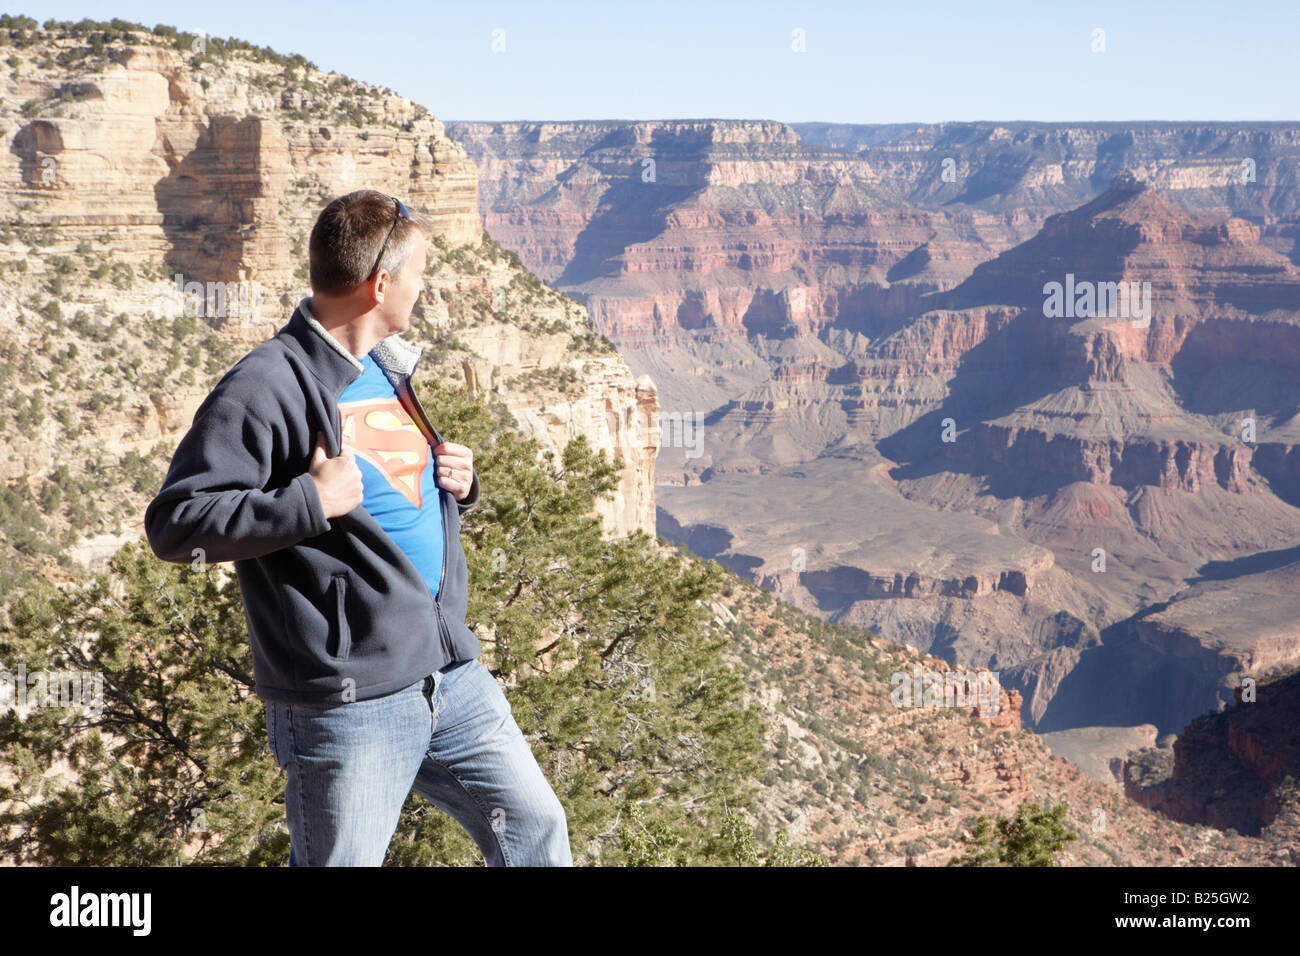 Superman at the Grand Canyon - Stock Image